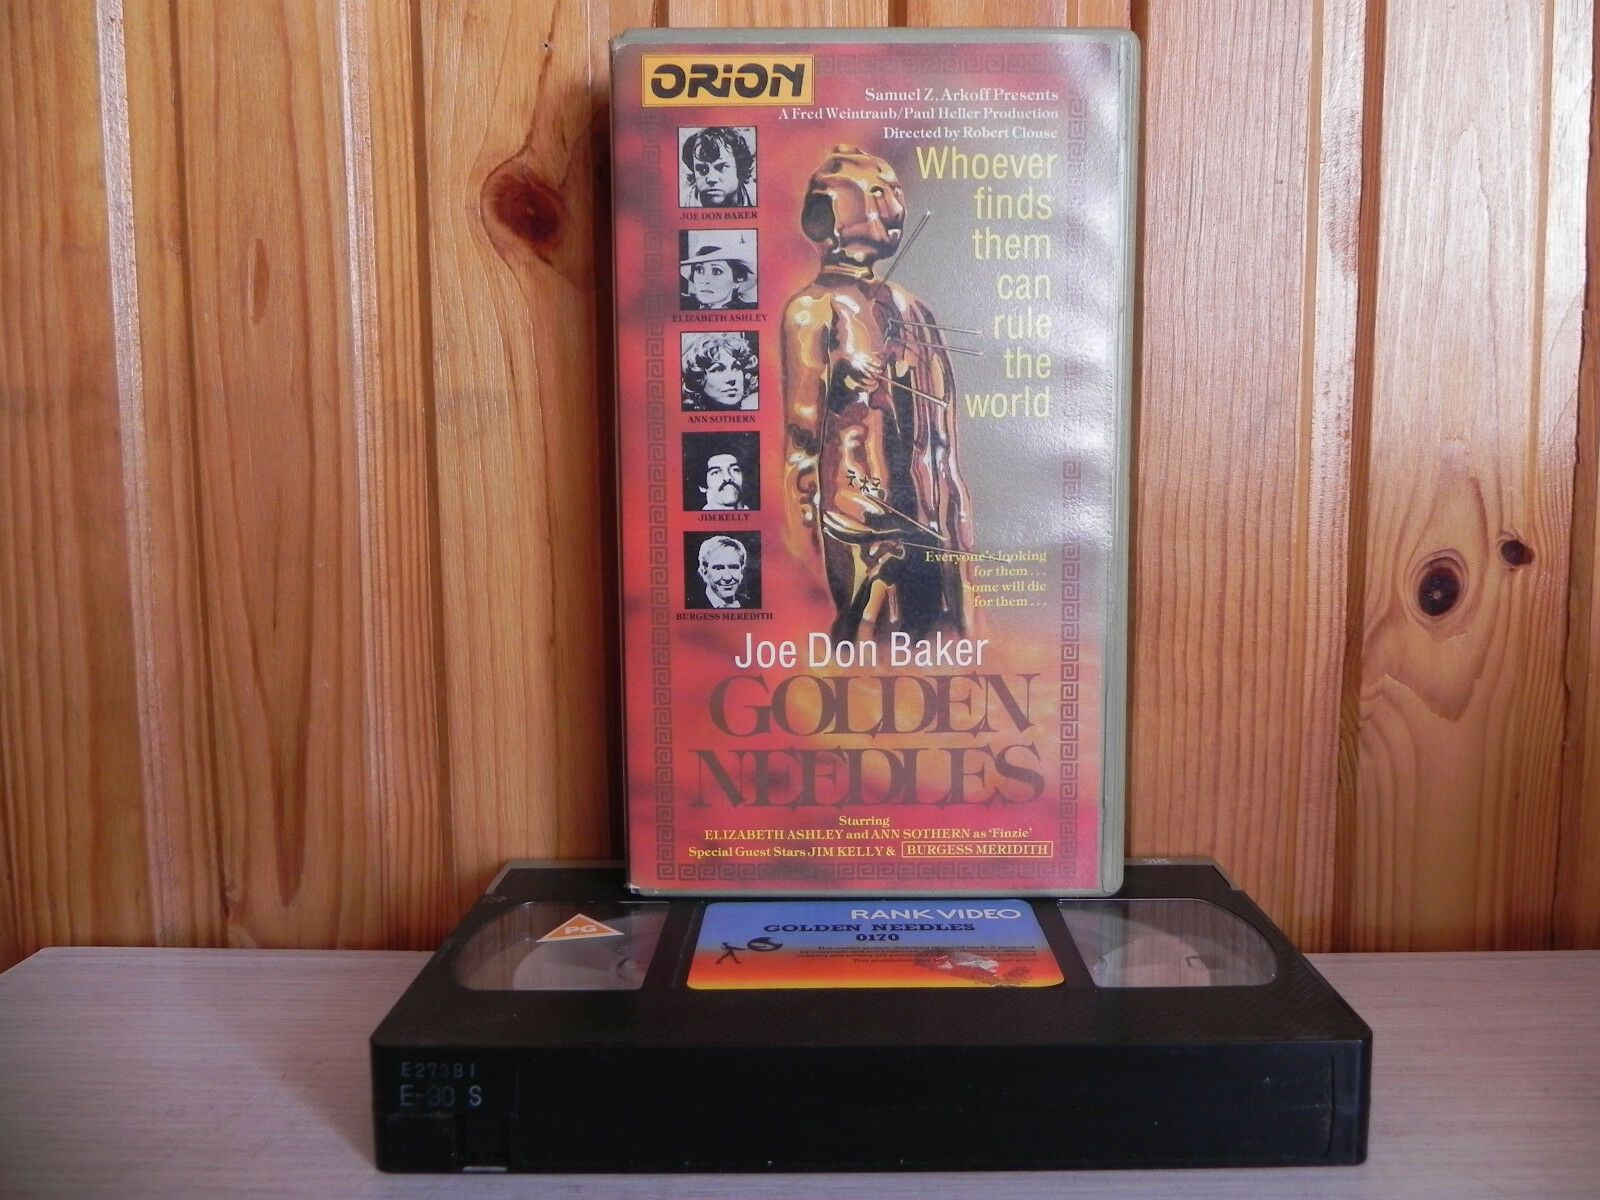 1972, Action, Action & Adventure, Golden Needles, Jim Kelly, Kelly, PAL, Pre Cert, Robert Clouse, S. Lee Pogostin, United States, VHS